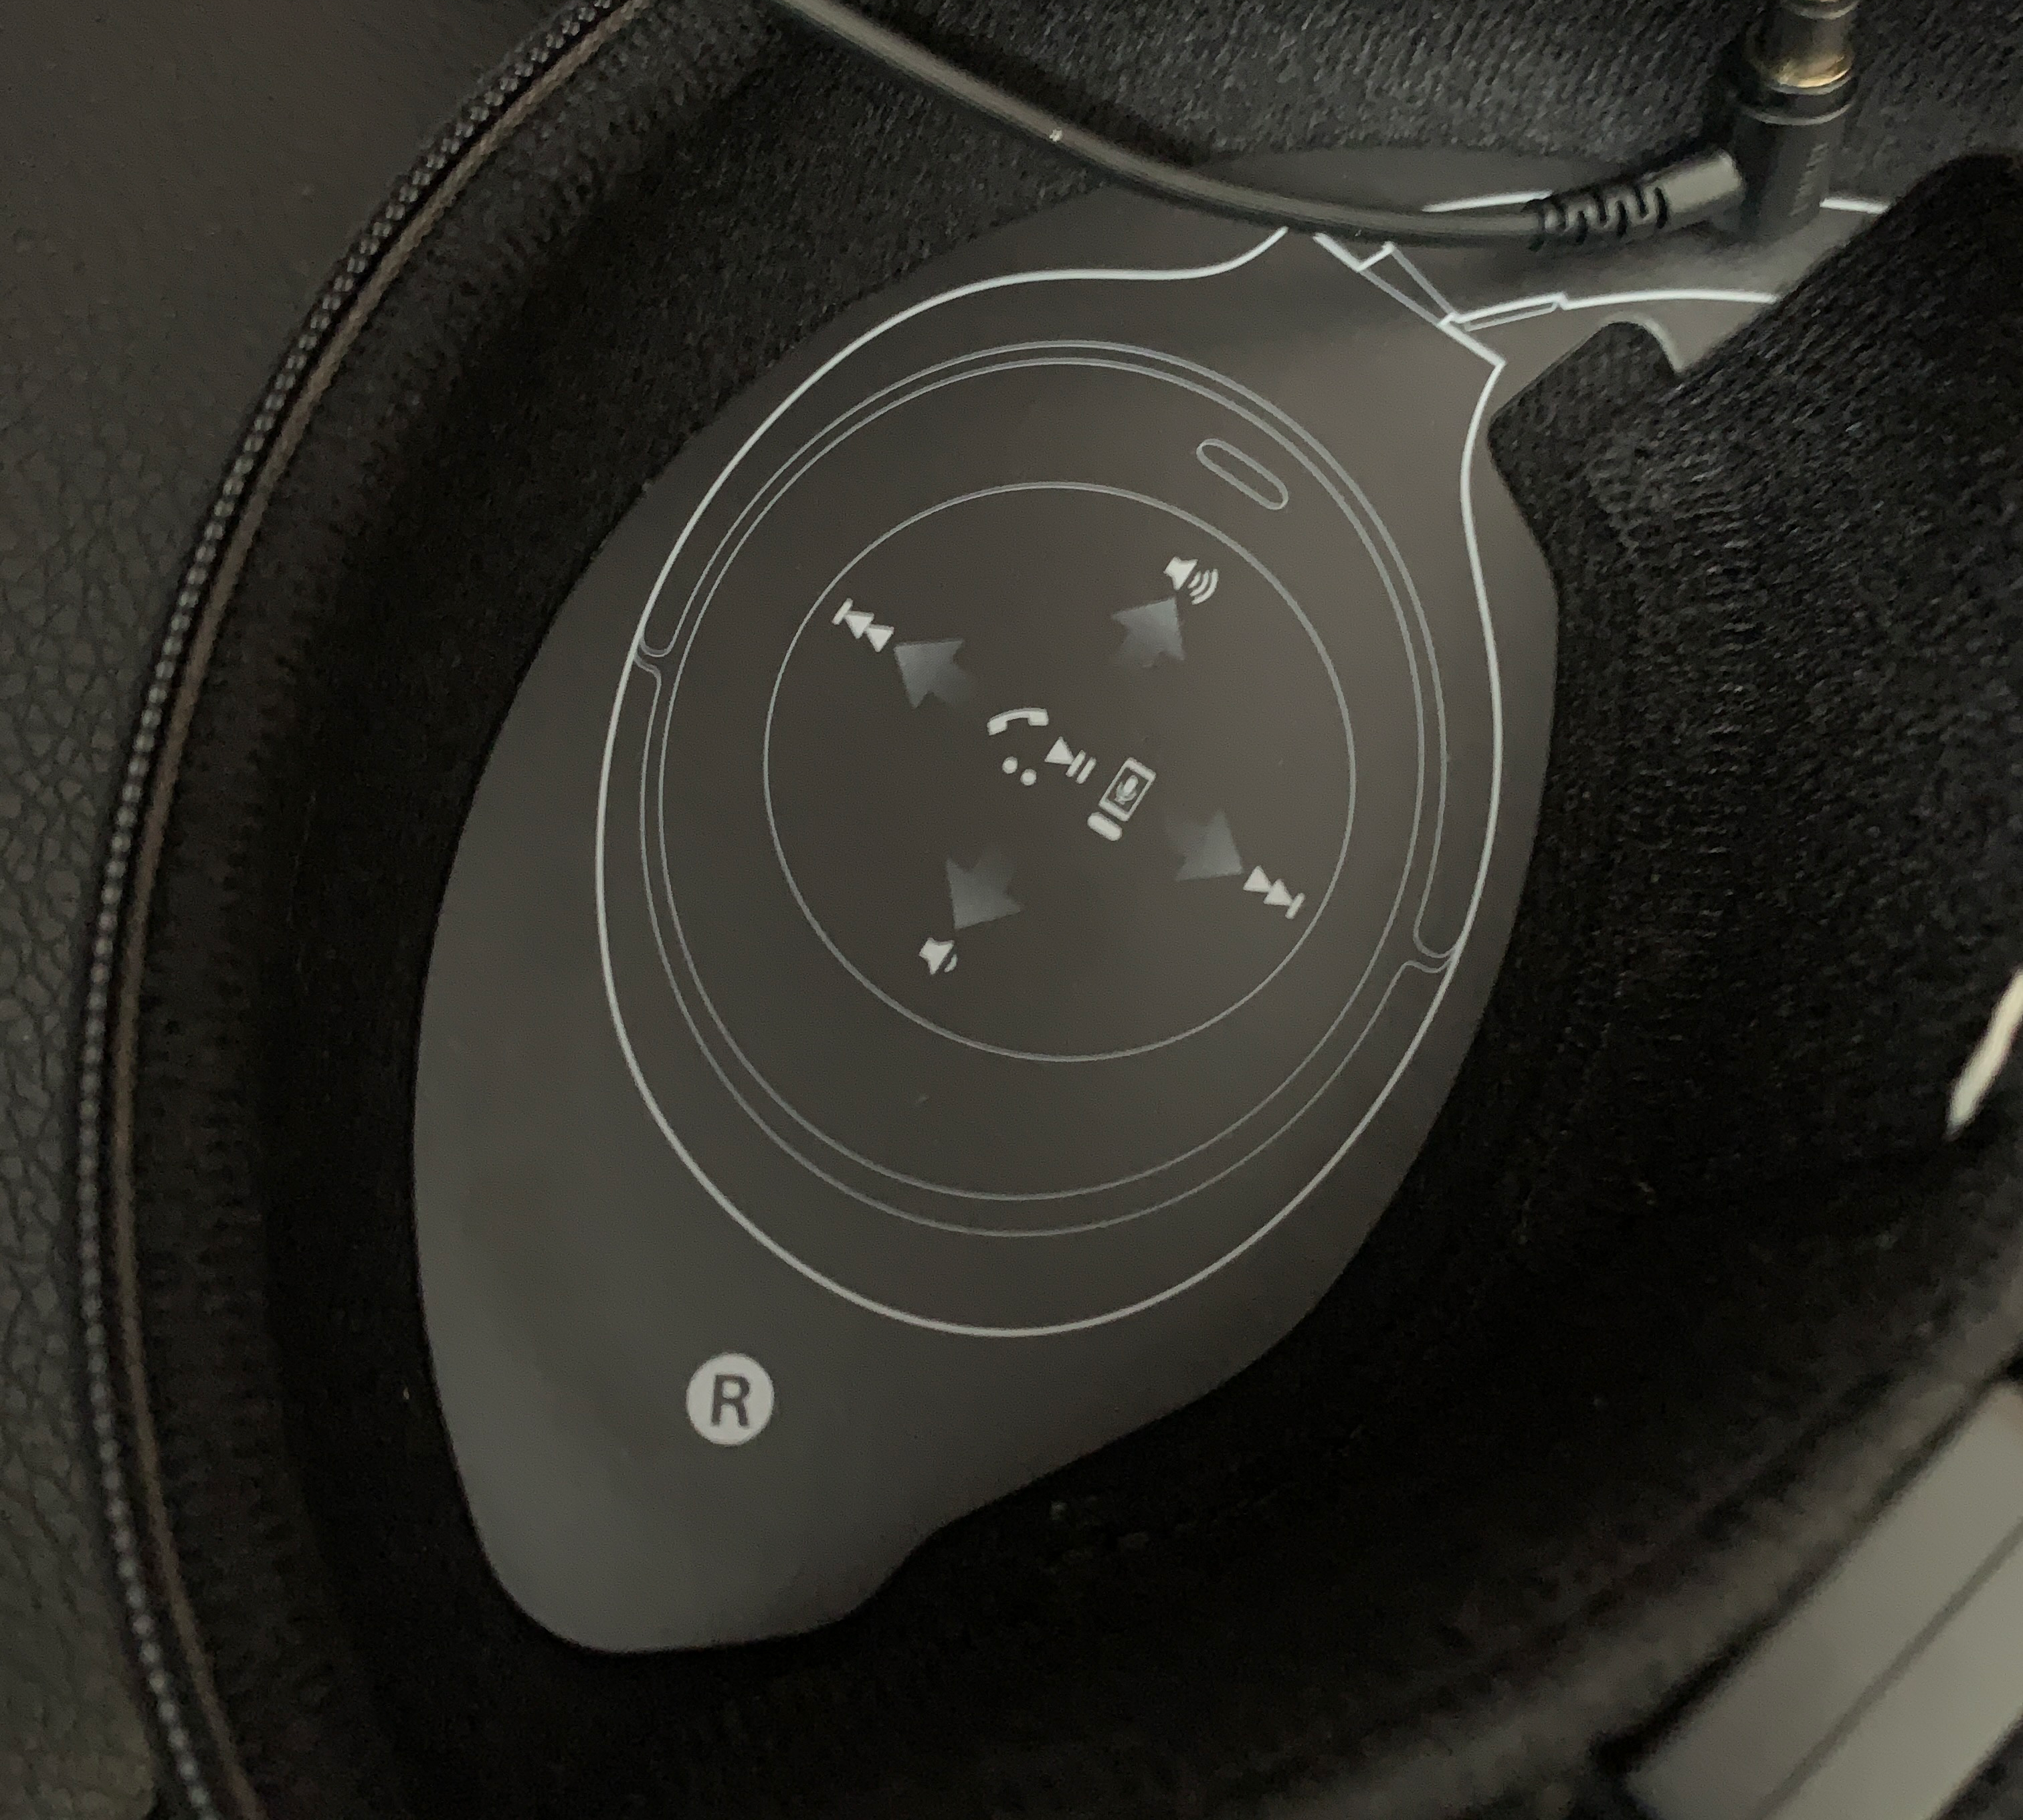 Sony's new noise-canceling headphones are great traveling companions